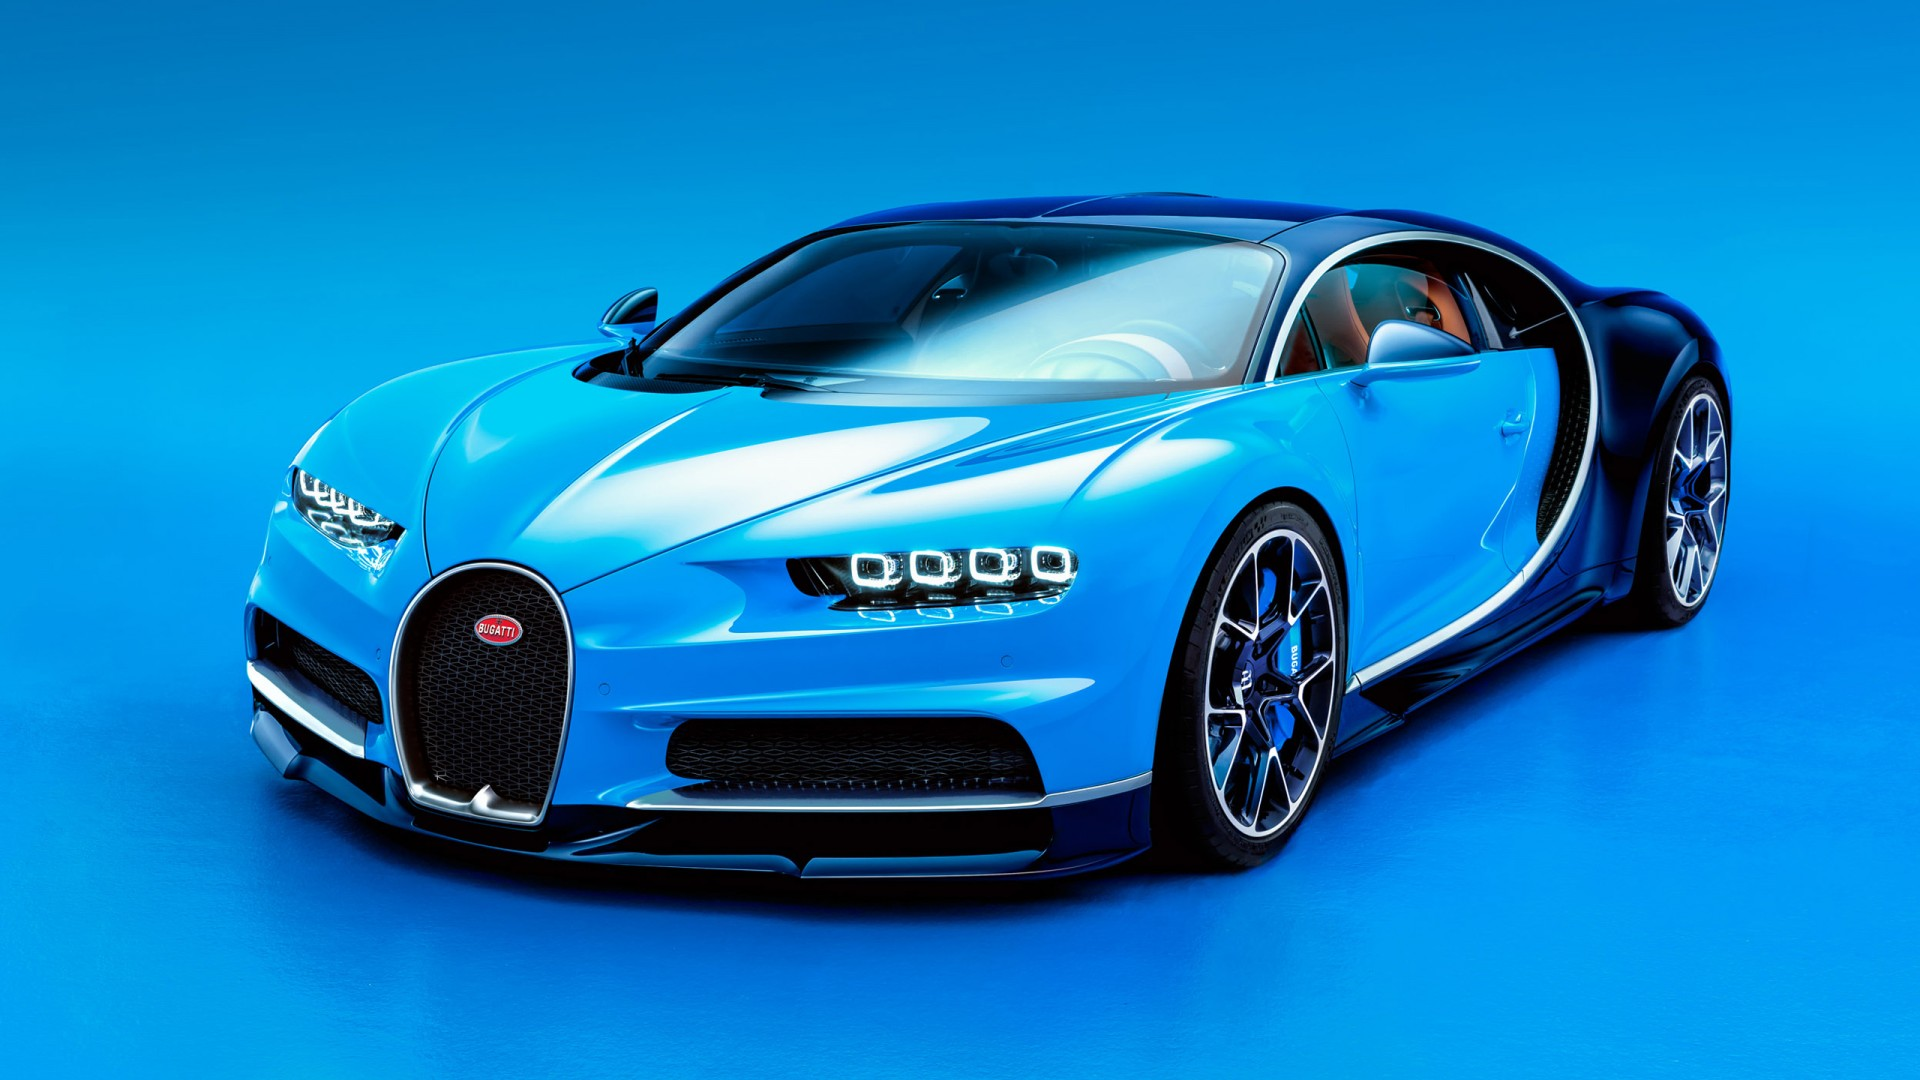 2016 bugatti chiron wallpaper hd car wallpapers id 6280. Black Bedroom Furniture Sets. Home Design Ideas